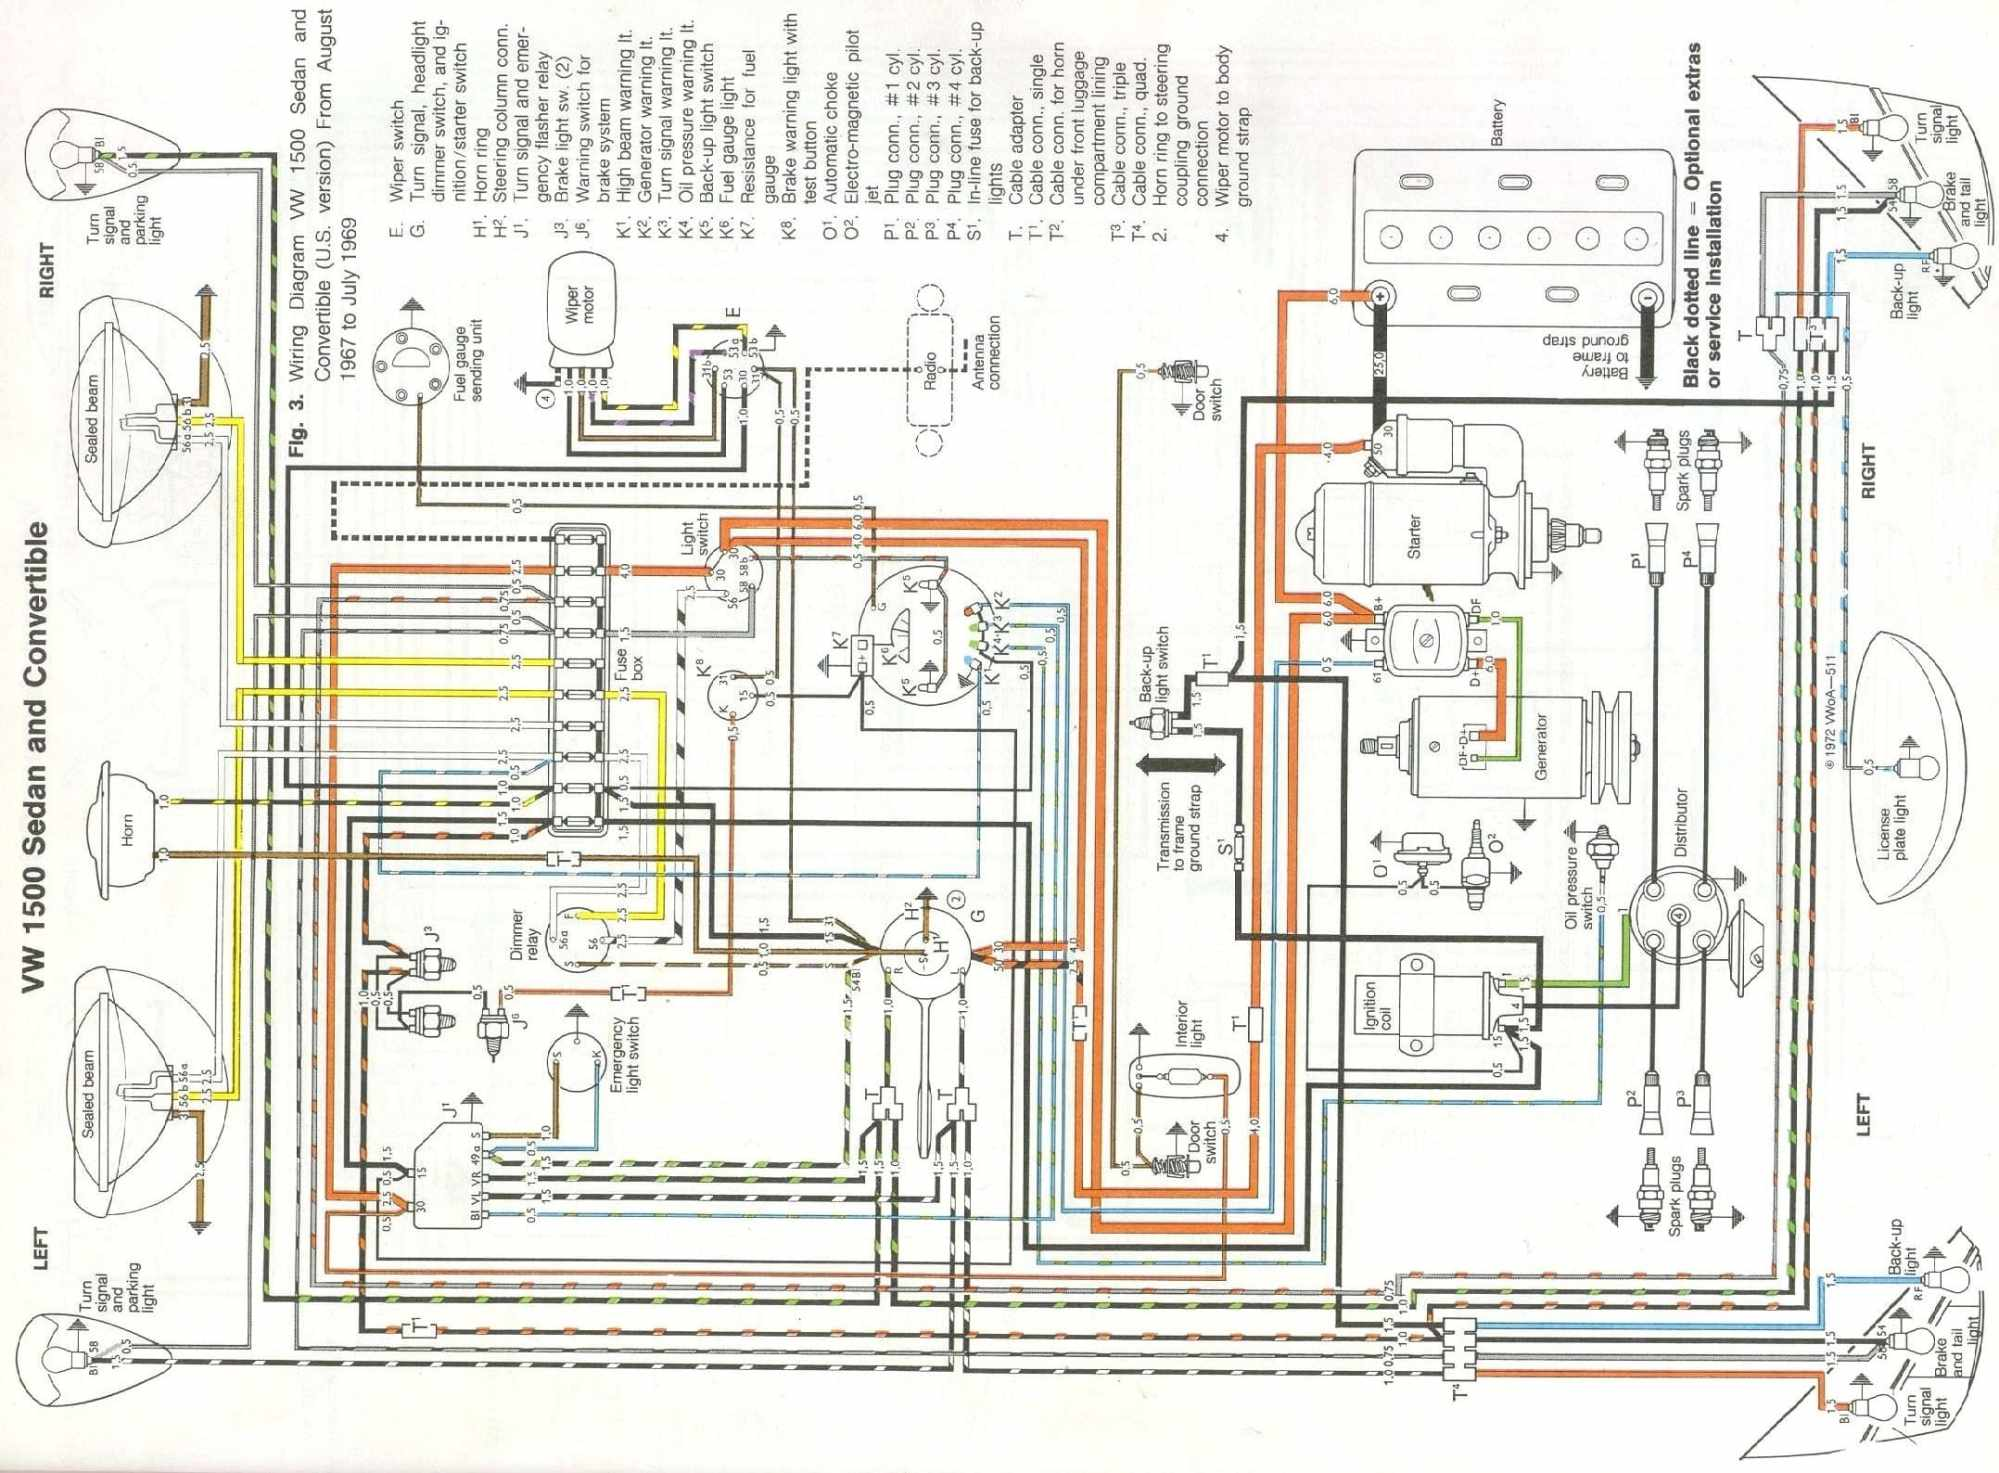 hight resolution of 1967 vw wiring harness 1967 vw speaker wiring diagram odicis 1967 vw beetle engine wiring diagram